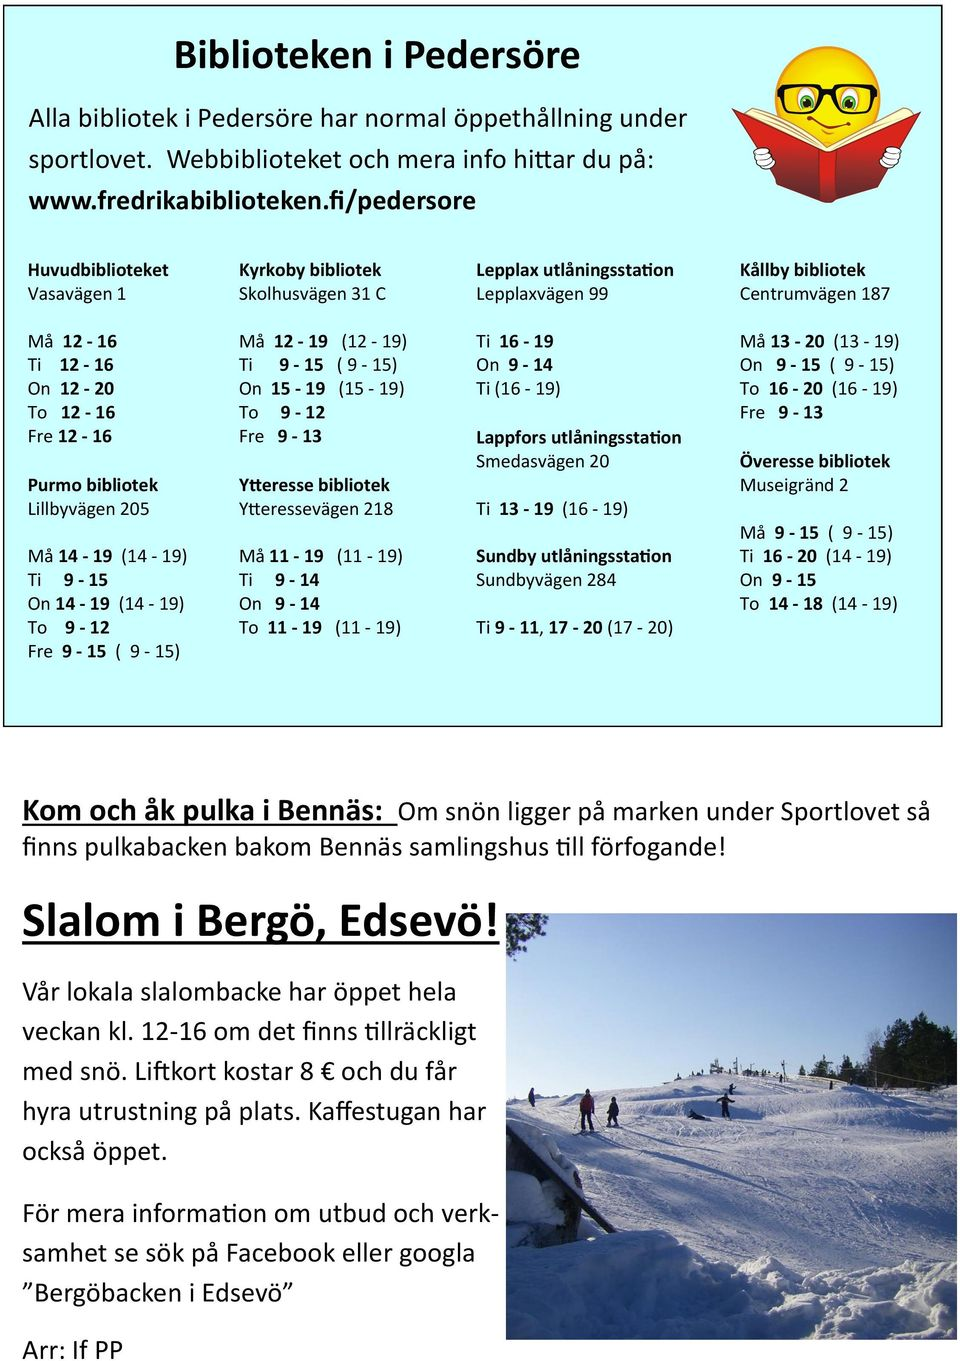 Purmo bibliotek Lillbyvägen 205 Må 14-19 (14-19) Ti 9-15 On 14-19 (14-19) To 9-12 Fre 9-15 ( 9-15) Må 12-19 (12-19) Ti 9-15 ( 9-15) On 15-19 (15-19) To 9-12 Fre 9-13 Ytteresse bibliotek